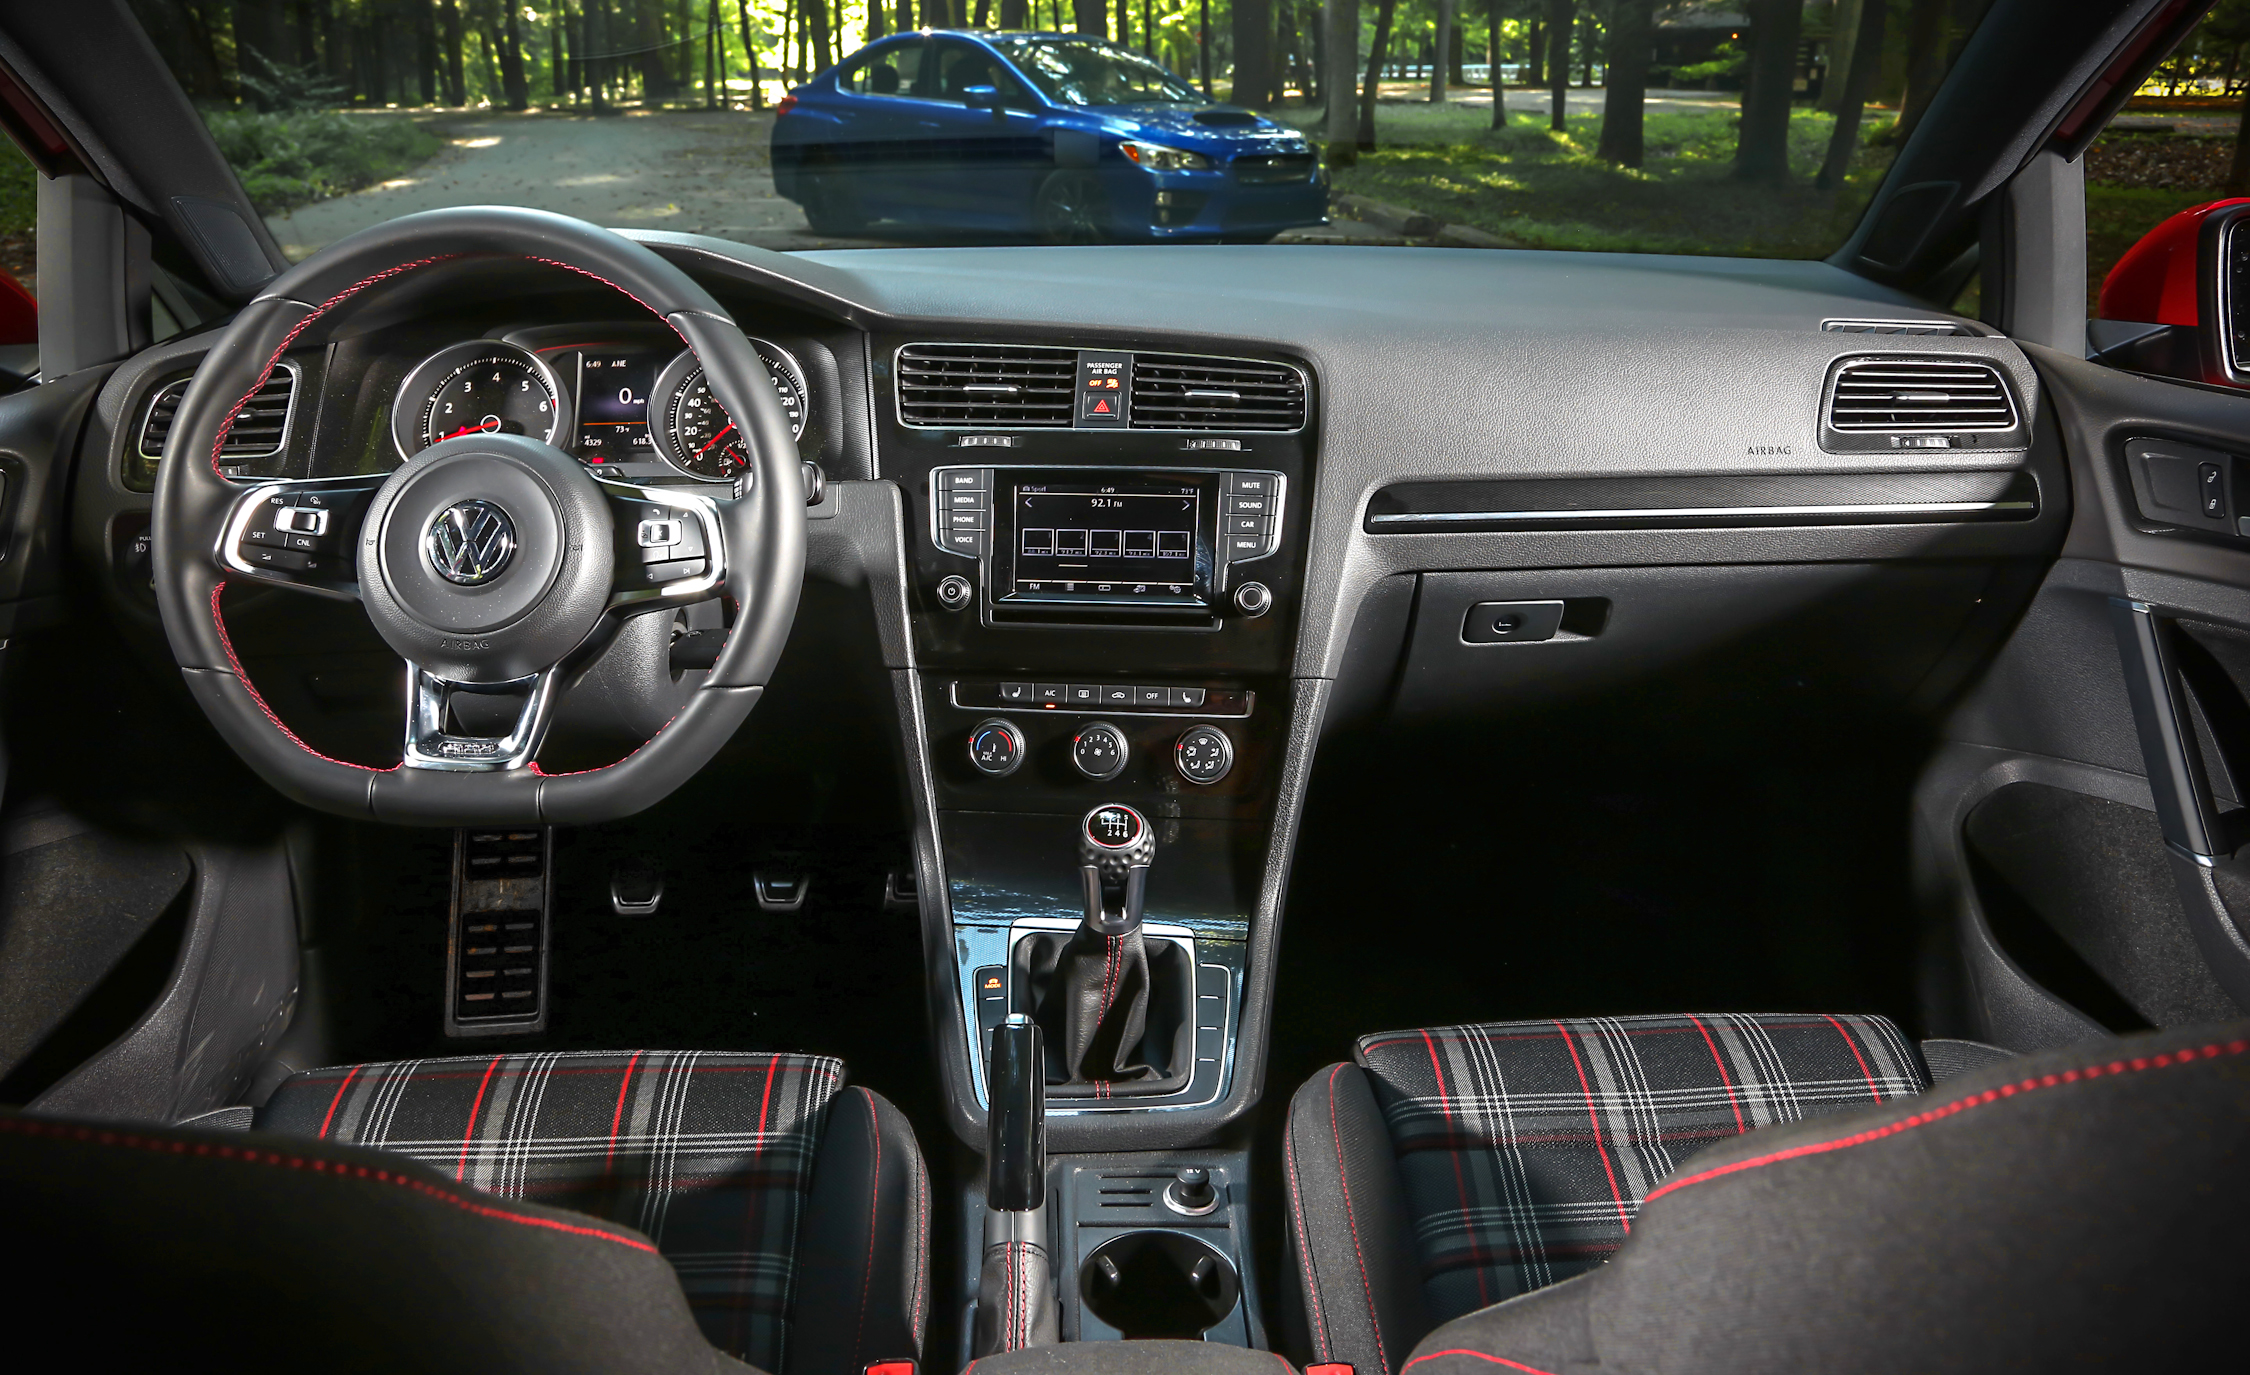 2015 Volkswagen GTI 5 Door Interior (Photo 42 of 55)